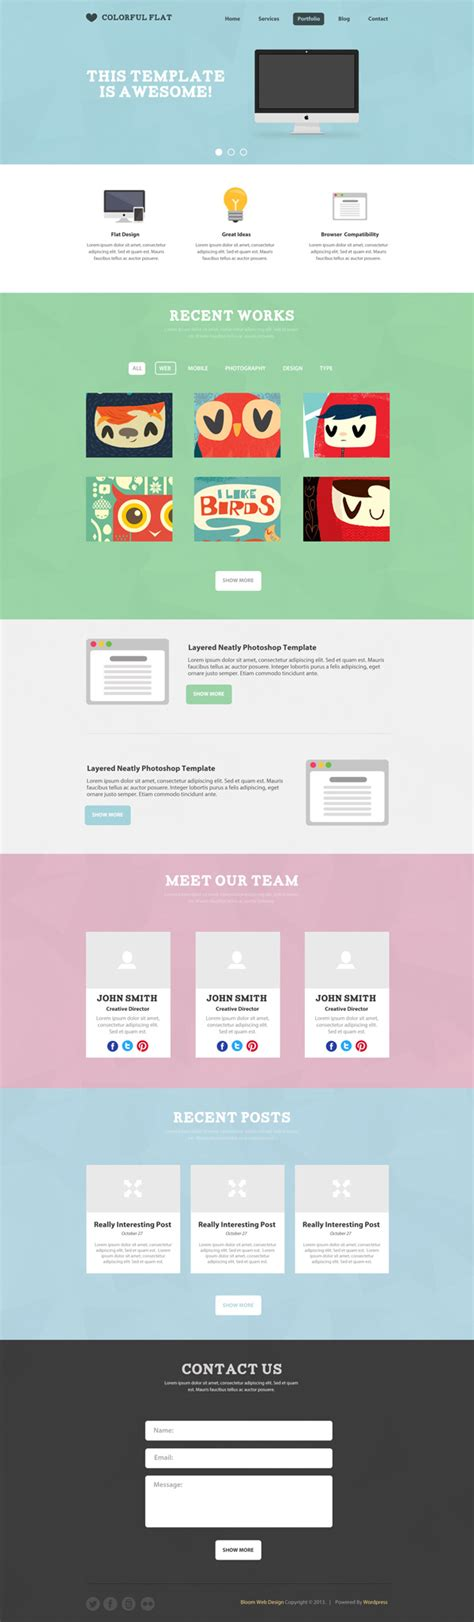 flat one page website template free layered psd file